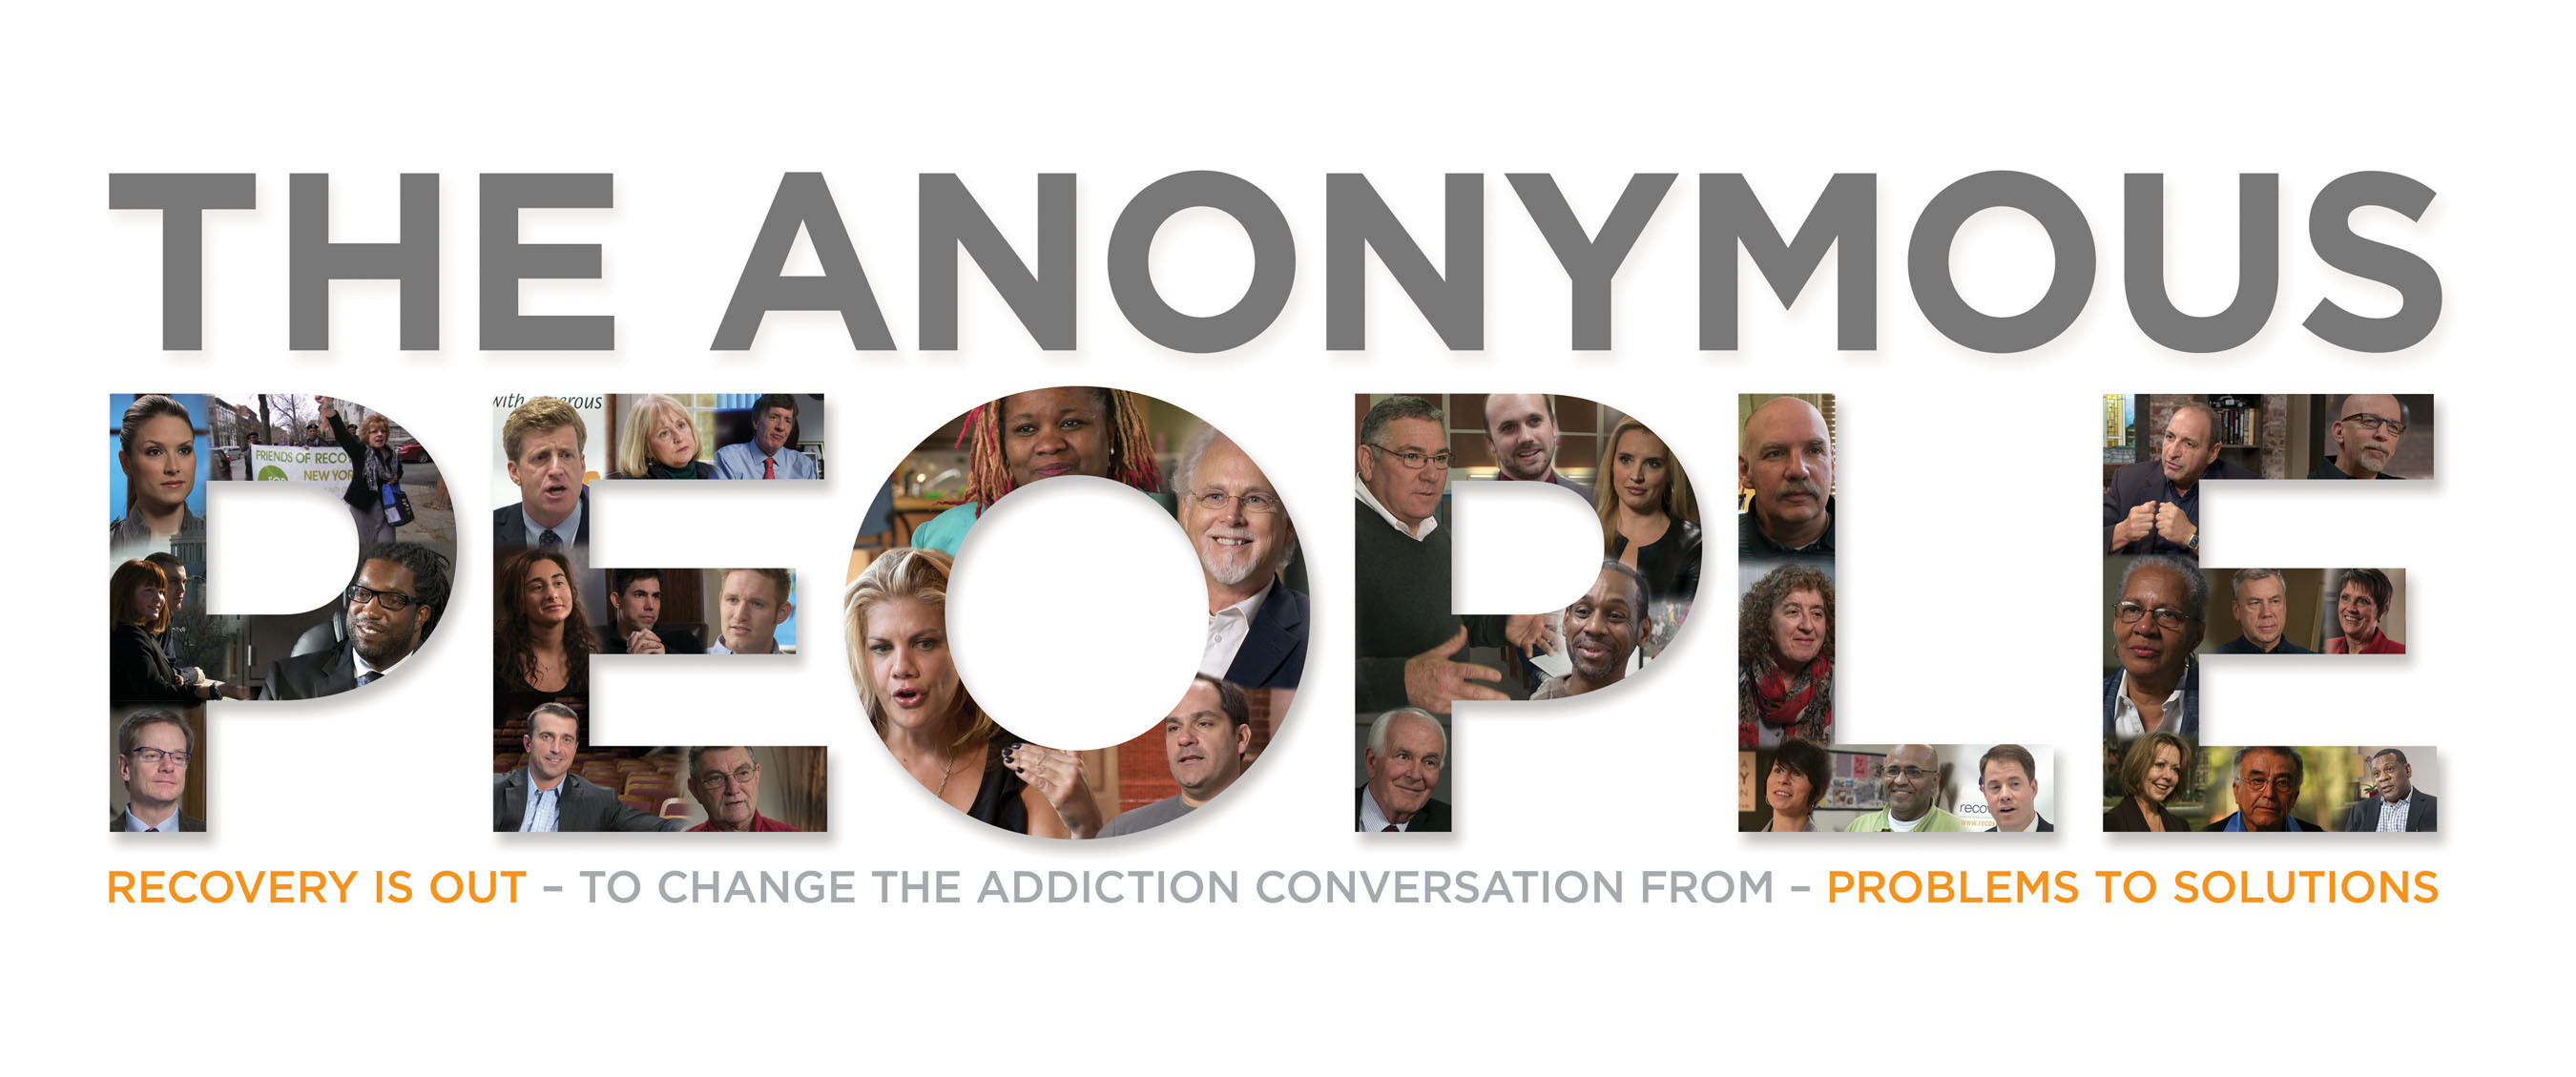 """""""The Anonymous People"""" film explores drug and alcohol addiction, enveloping over 23 million people and costing Americans over $350 billion annually, and the 23.5 million more Americans who are thriving in long-term recovery, despite discrimination, criminalization and a failing approach to healing. The documentary asks: Why don't we treat addiction in this country like any other health issue? Only when we shed disparaging labels, and demand respect, will the world give us the respect we are due. ManyFaces1Voice.org. #SilentNoMore. (PRNewsFoto/The Anonymous People) (PRNewsFoto/THE ANONYMOUS PEOPLE)"""